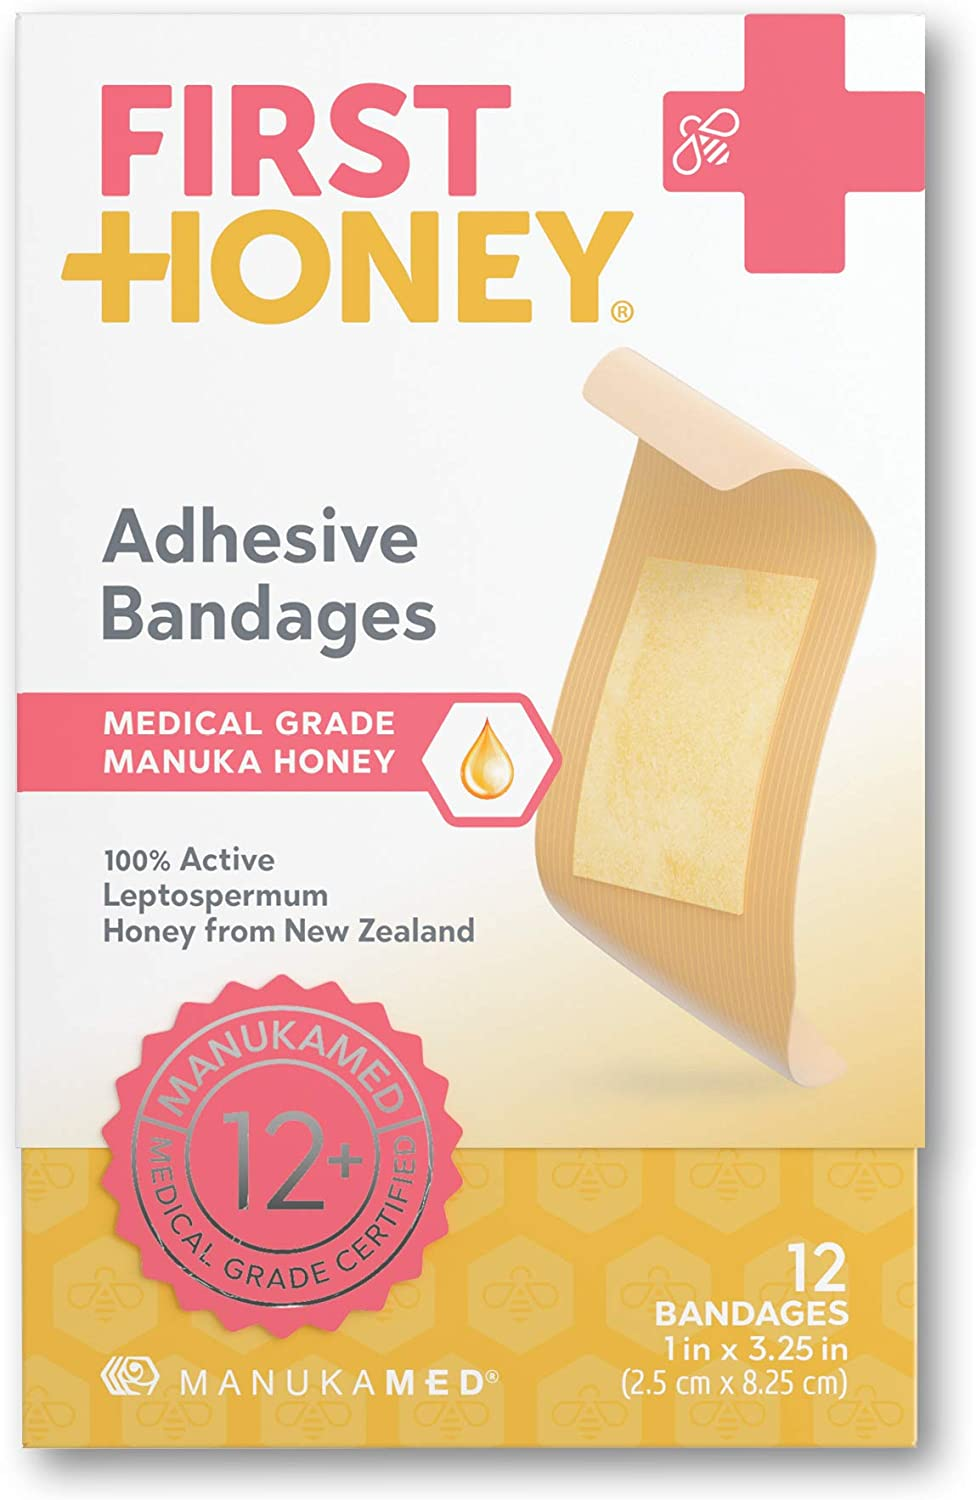 First Aid Care Burns Cuts Scrapes Lacerations Antibiotic Free Wound Dressing Medical Grade Honey Adhesive Pads First Honey Manuka Honey Adhesive Bandages 12 Pack Wounds Latex Free